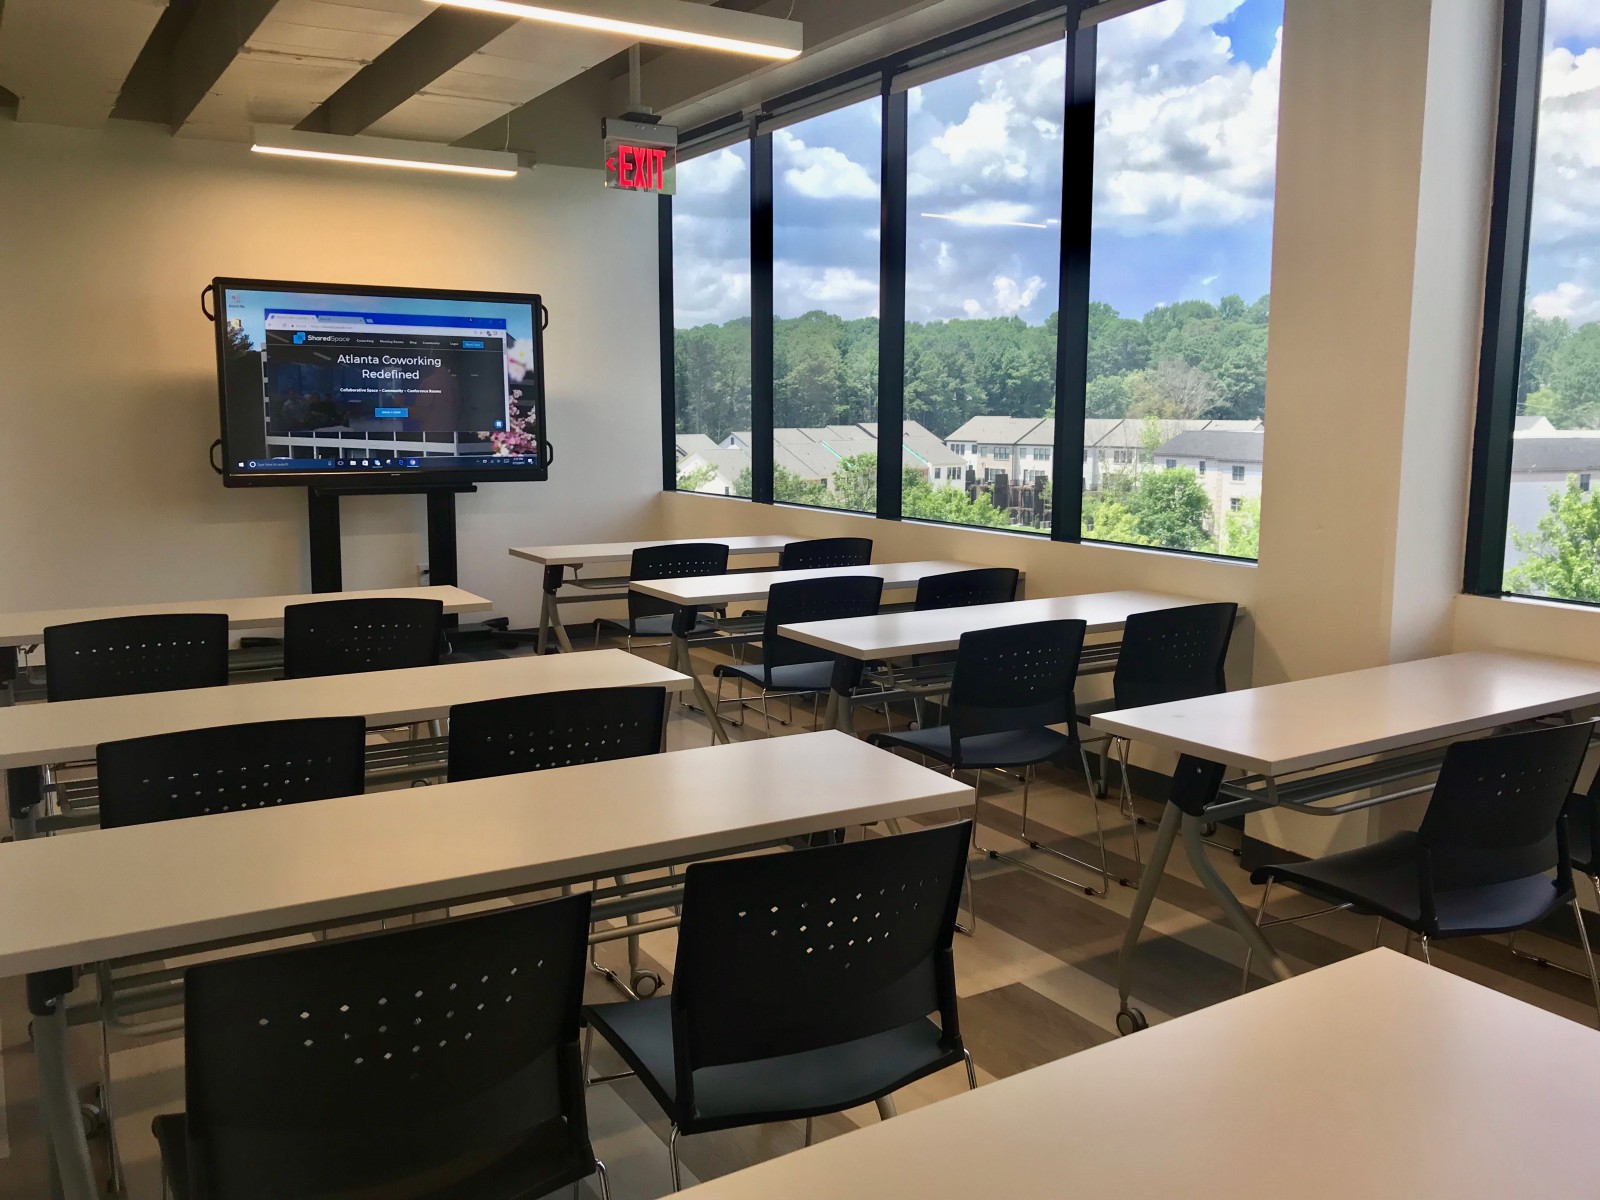 SharedSpace: Expanding and Redefining Atlanta Coworking